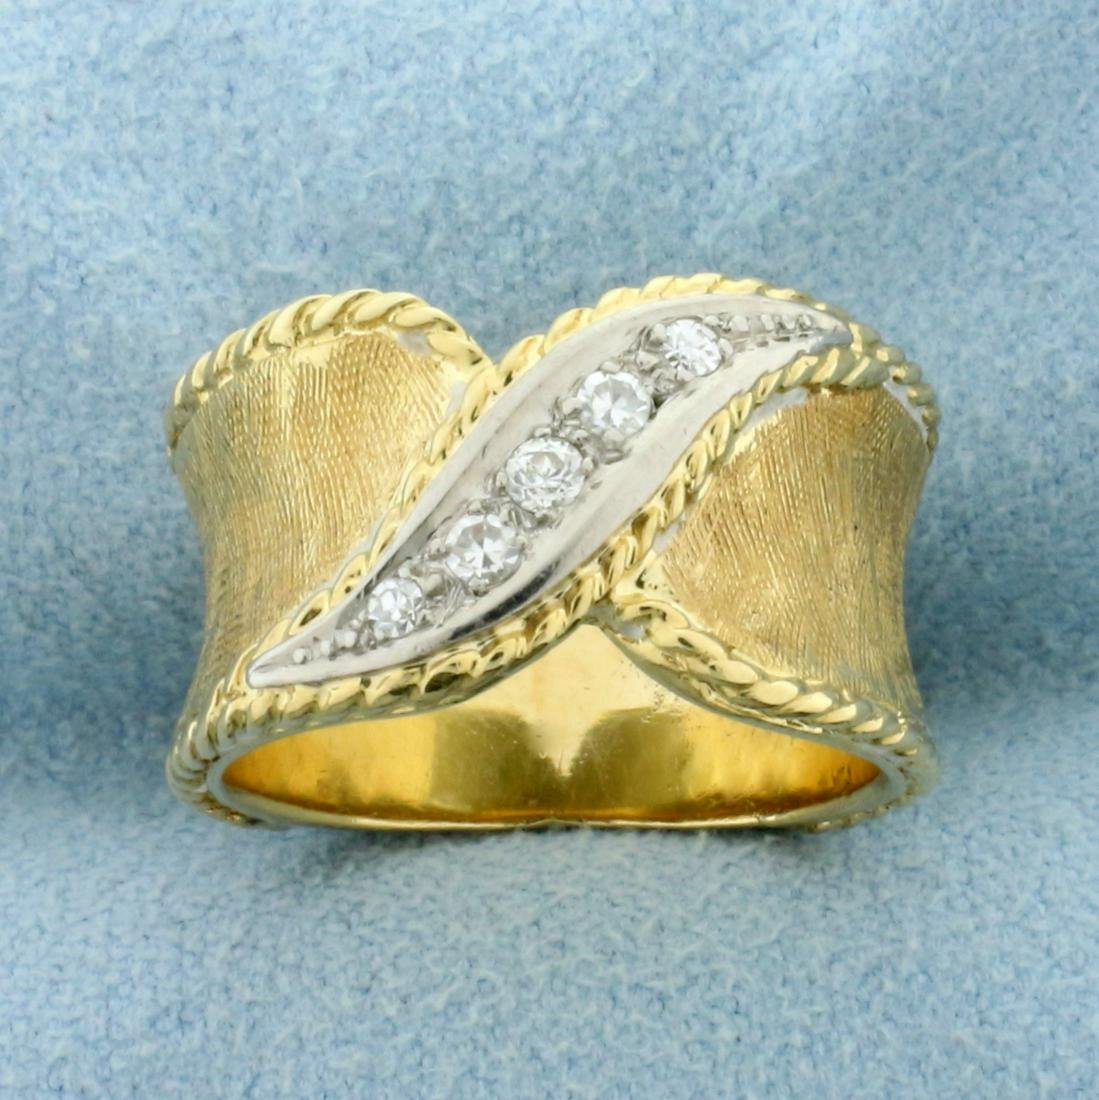 Unique 1/8ct TW Diamond Band Ring in 14K Yellow and